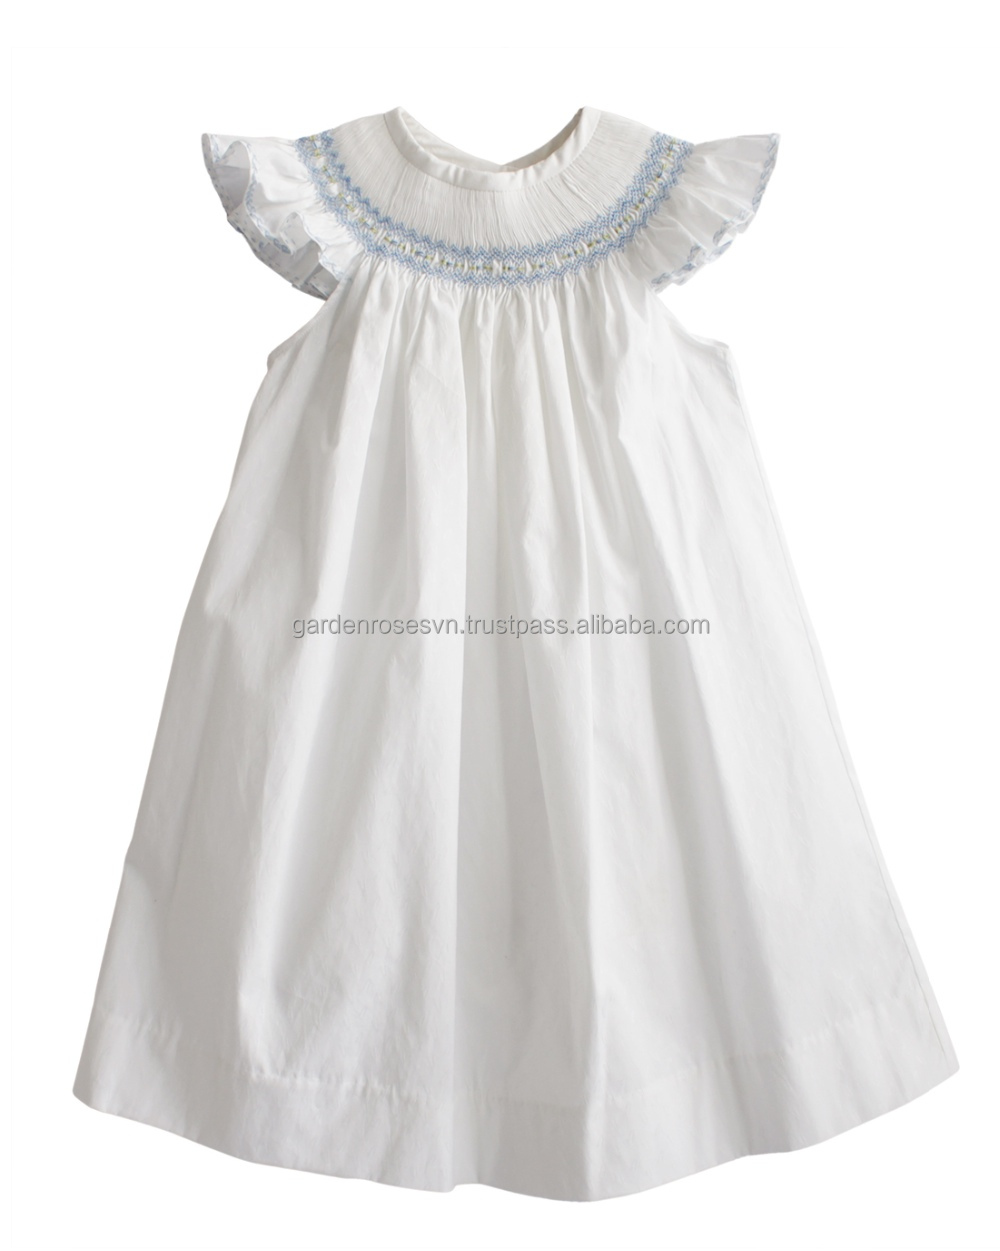 White hand smocked dress for baby and girl in cotton poplin